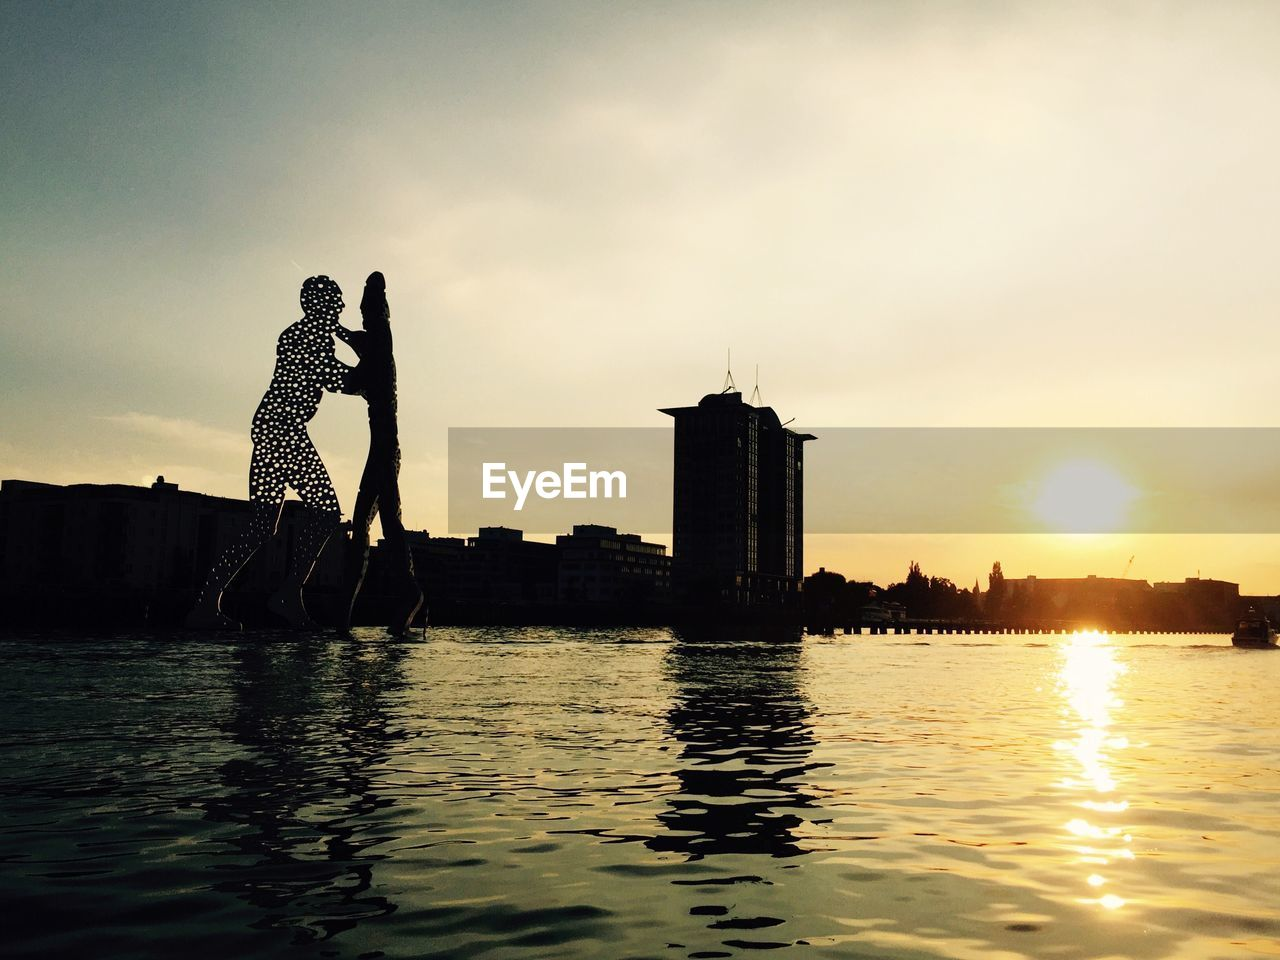 water, waterfront, reflection, sunset, sky, architecture, river, outdoors, real people, built structure, building exterior, standing, silhouette, full length, men, nature, one person, lifestyles, day, beauty in nature, city, people